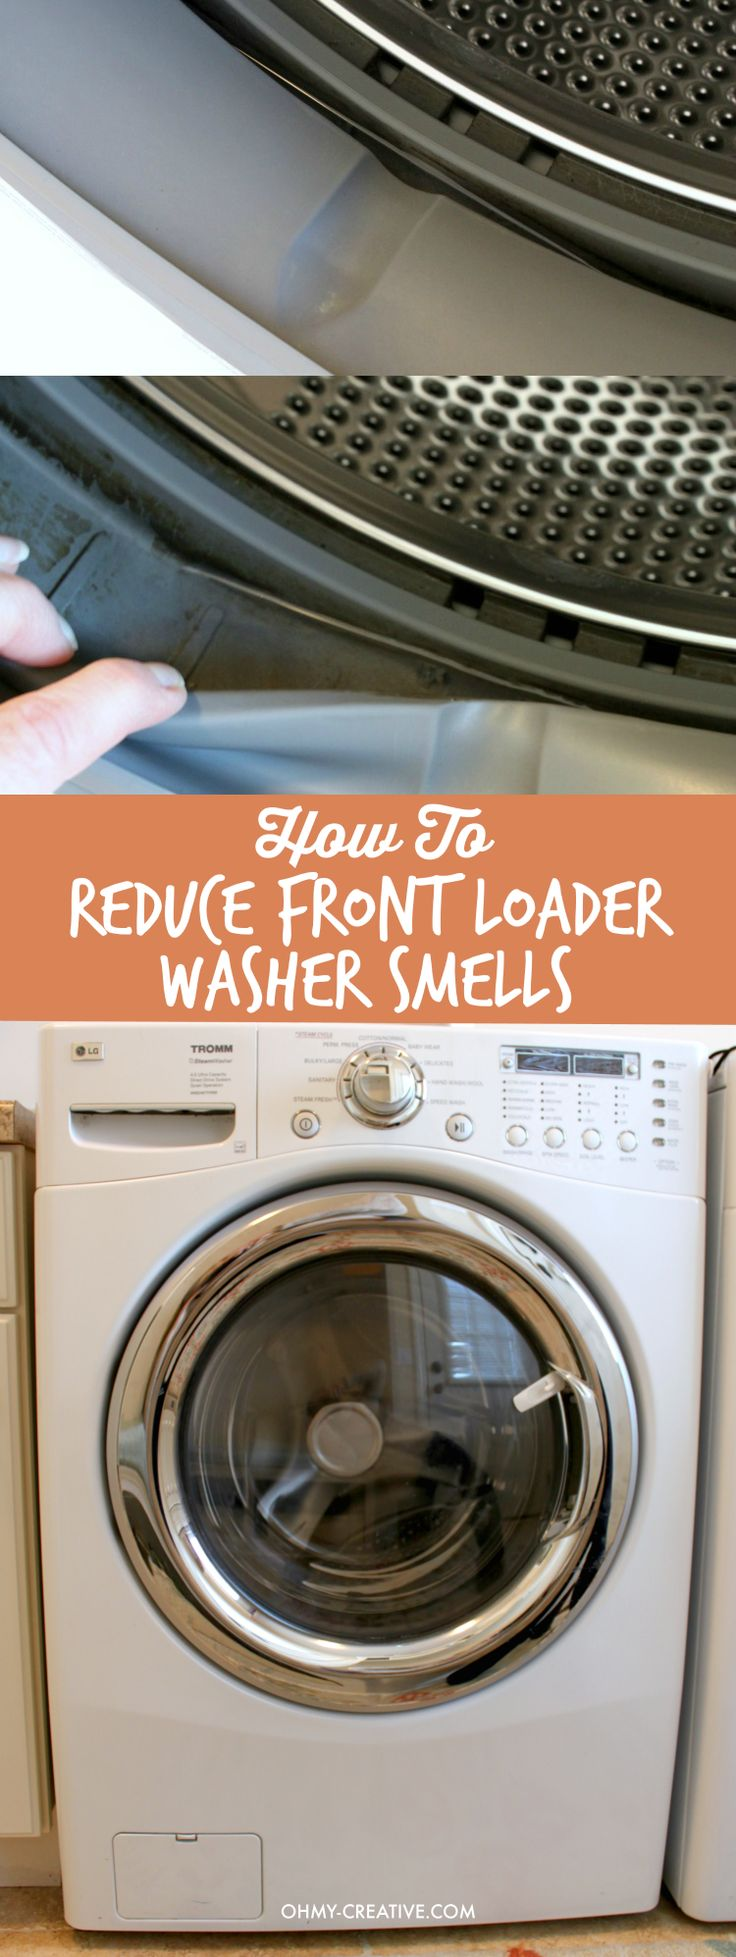 Great washers - awful mildew smell! See my simple tip on How To Reduce Front Loader Washer Smells  |  OHMY-CREATIVE.COM